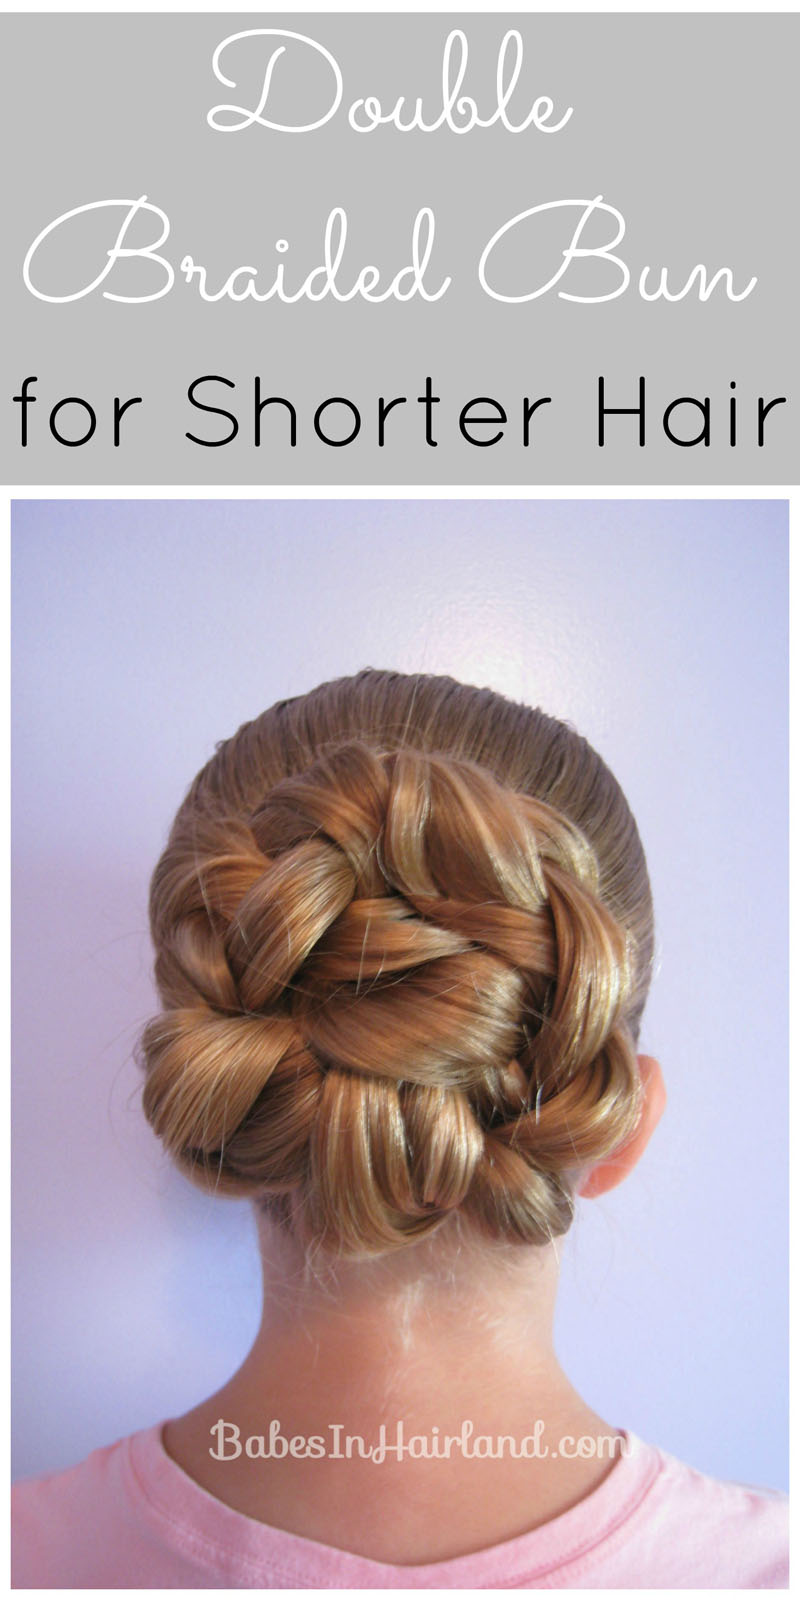 Double Braided Bun for Shorter Hair from BabesInHairland.com (6)